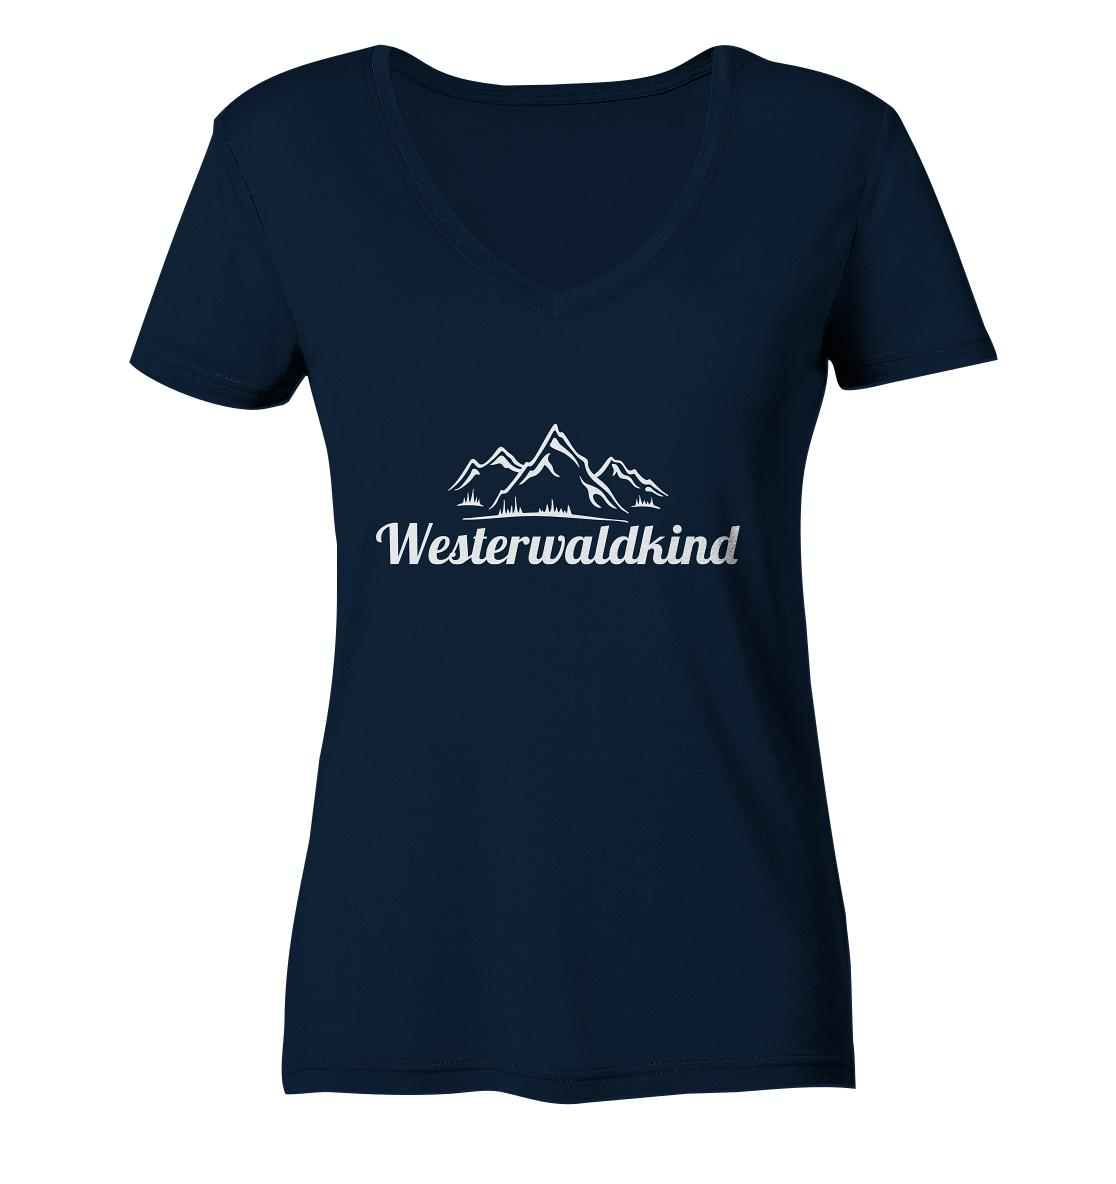 Westerwaldkind -  Ladies Organic V-Neck Shirt